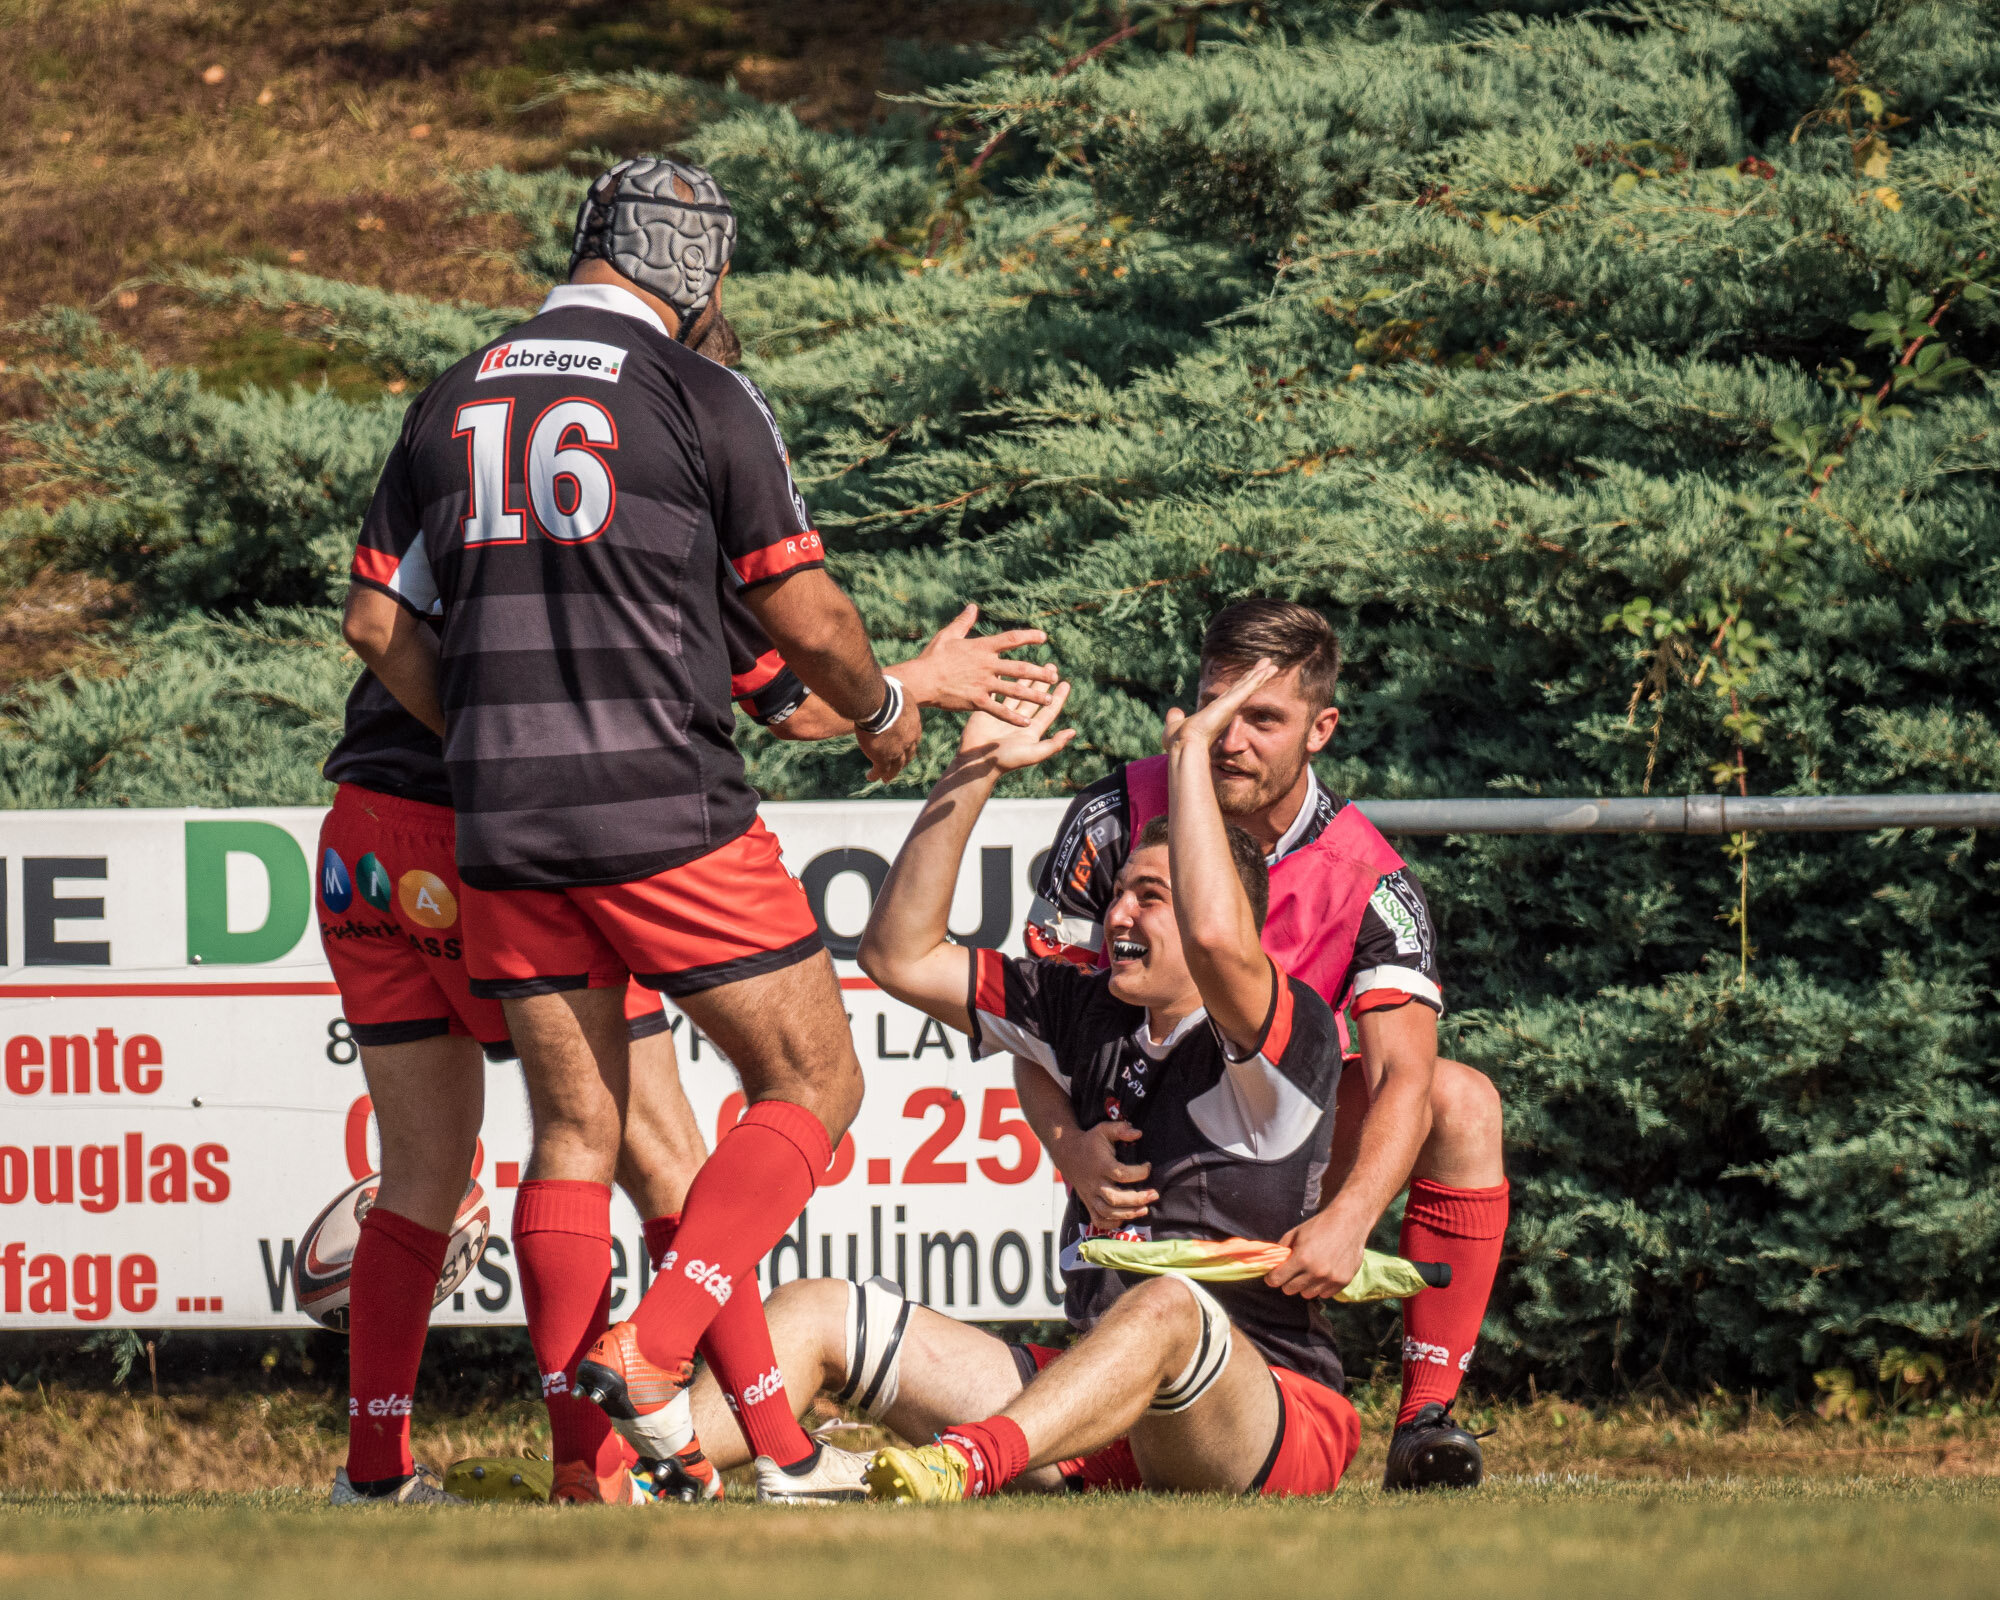 Second try for St Yrieix - a run down the left